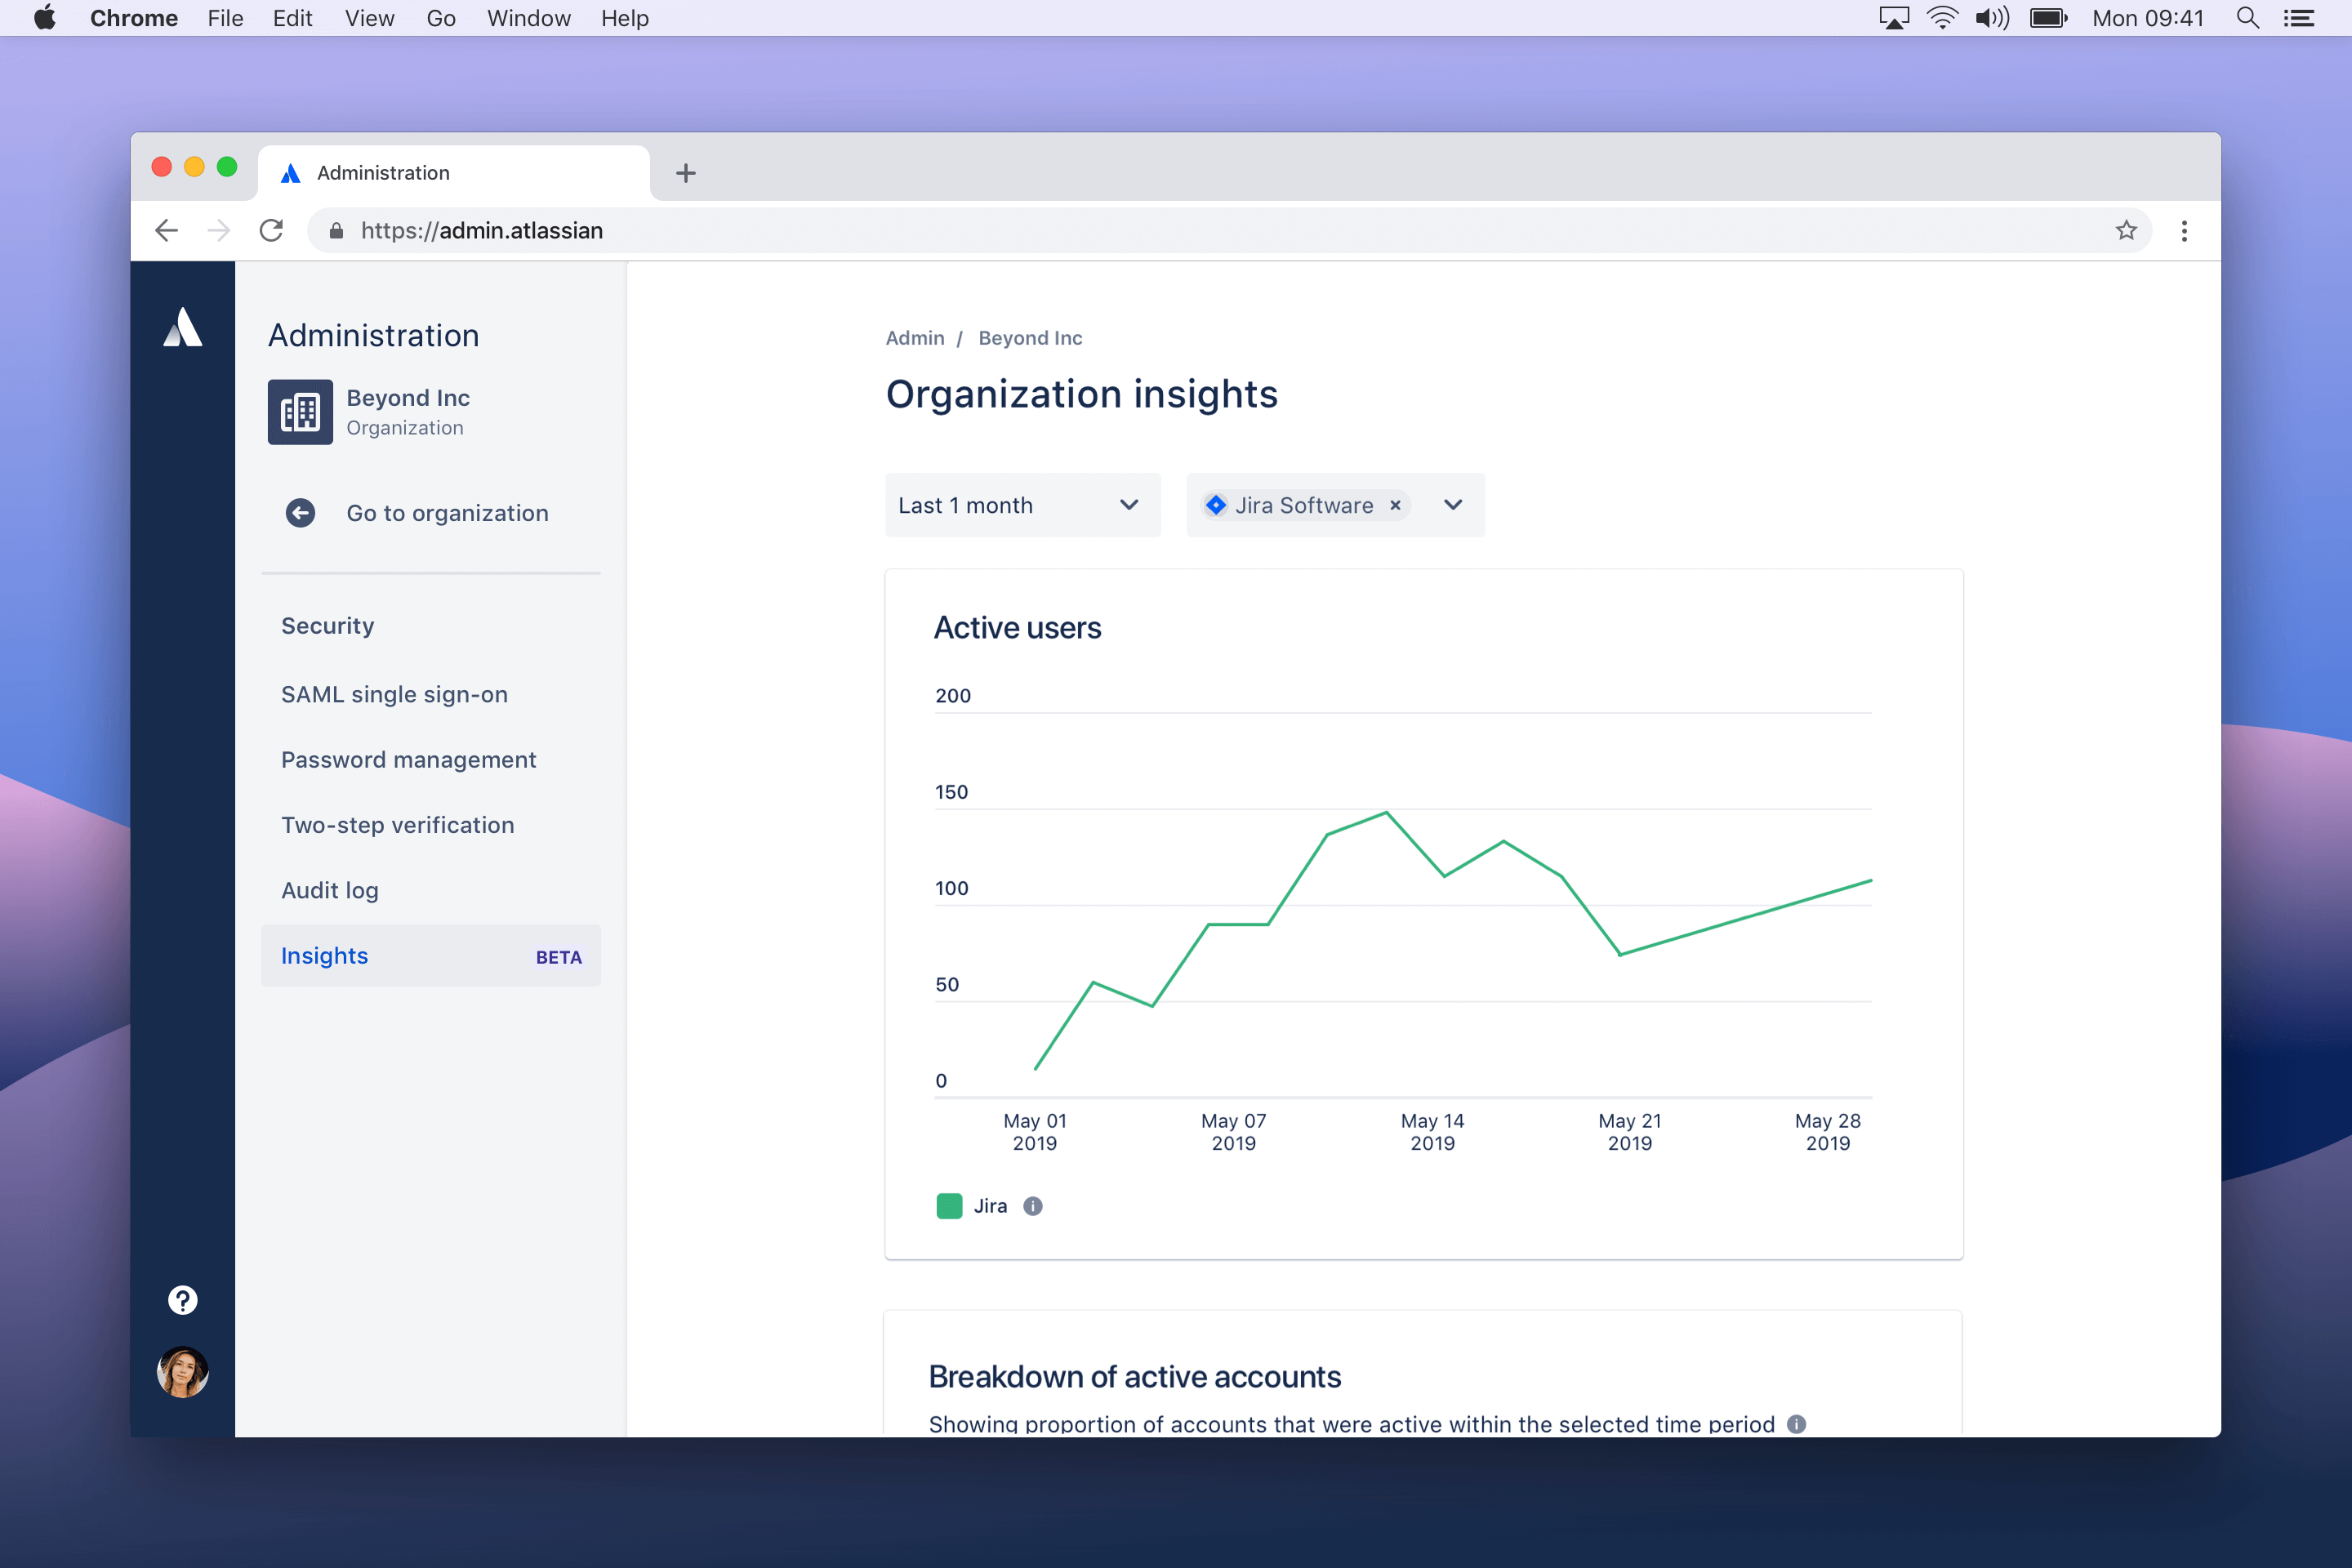 Admin insights in Jira Service Management